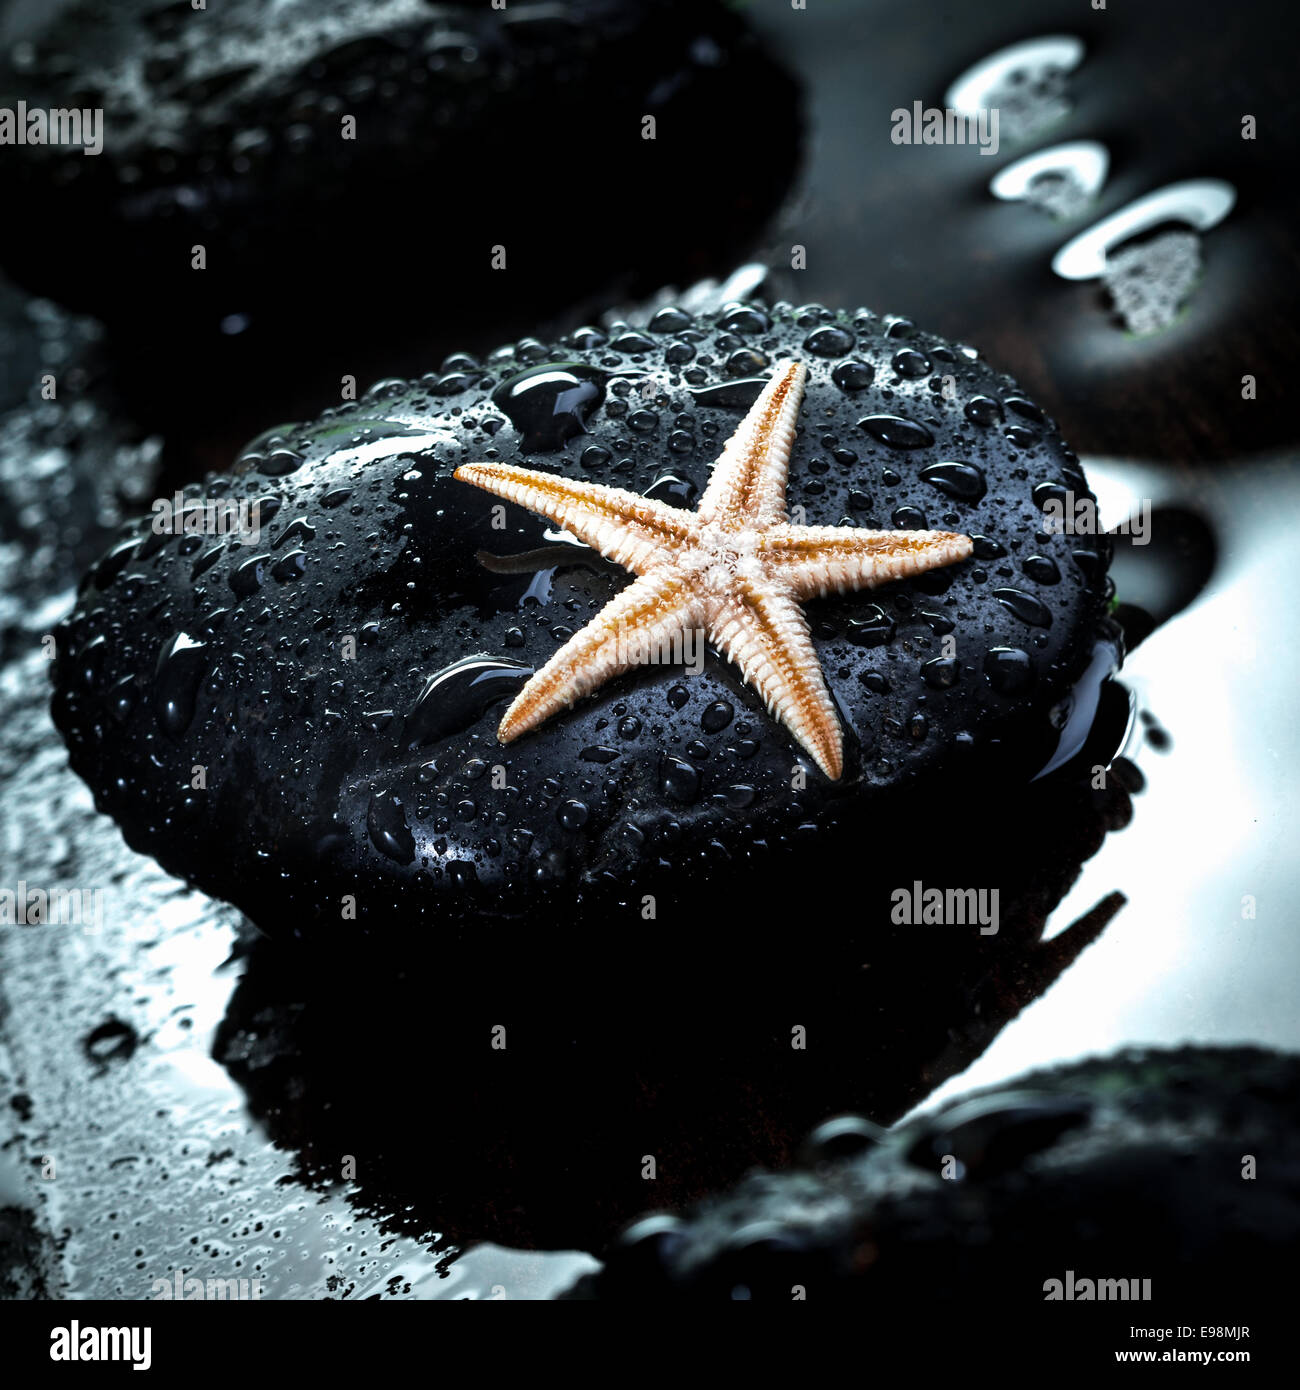 Black therapeutic spa massage stone glistening with water droplets with a small starfish - Stock Image